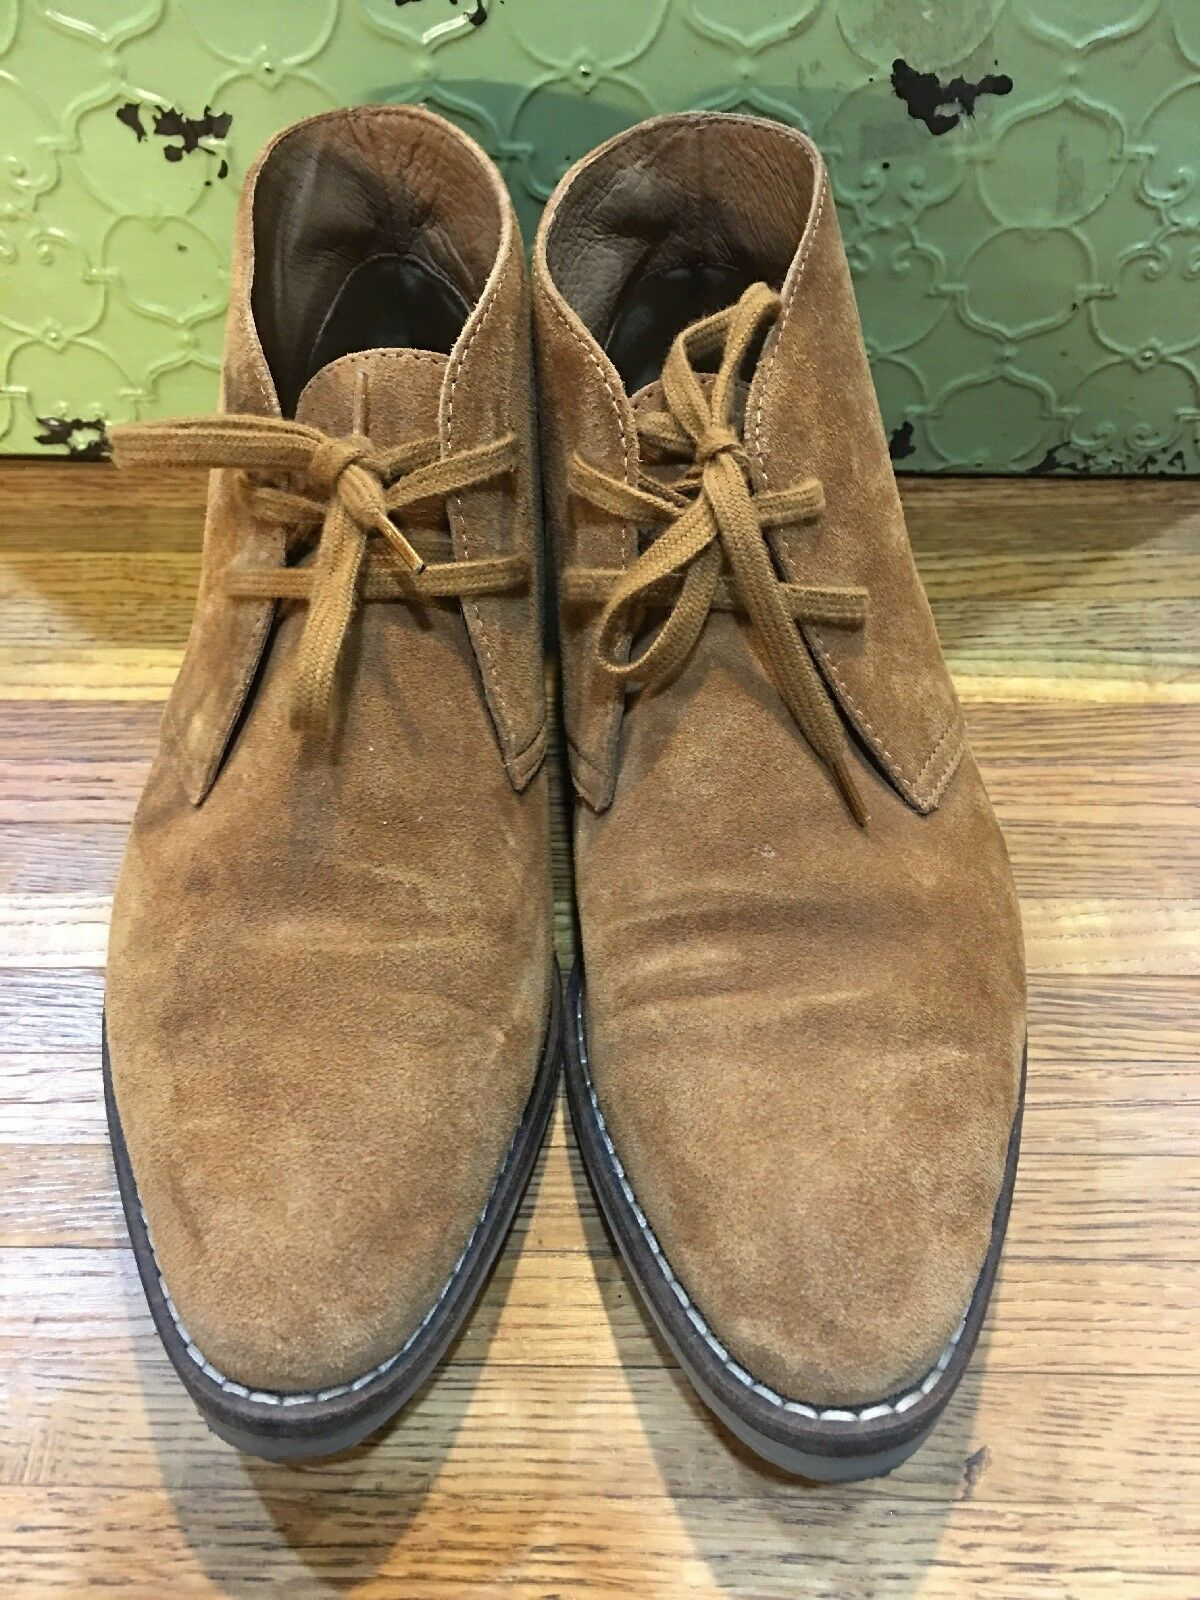 J Crew MacAlister Womens Casual Suede Lace Up Flat Desert Boot Chukka Sz 8 B4139